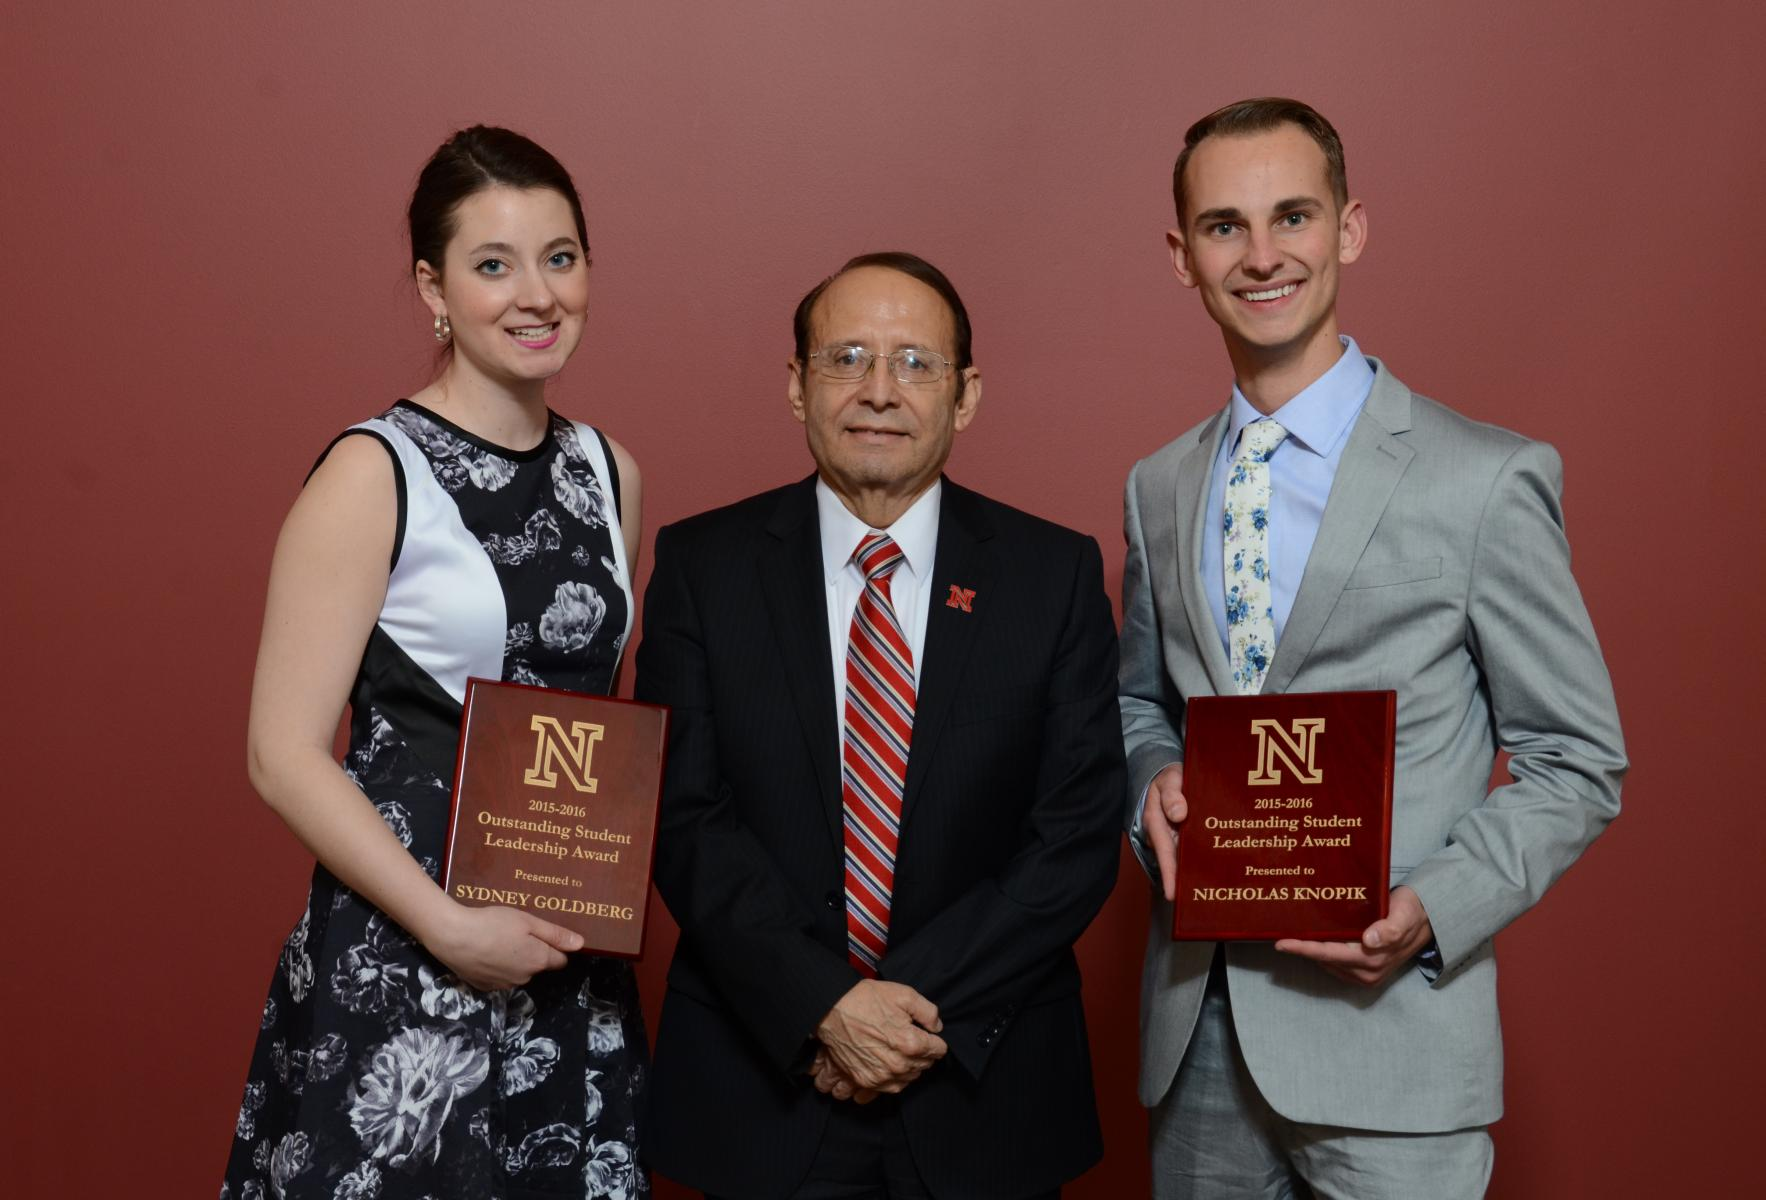 Sydney Goldberg and Nicholas Knopik, recipients of the 2016 Outstanding Student Leadership Award, with Dr. Juan Franco.